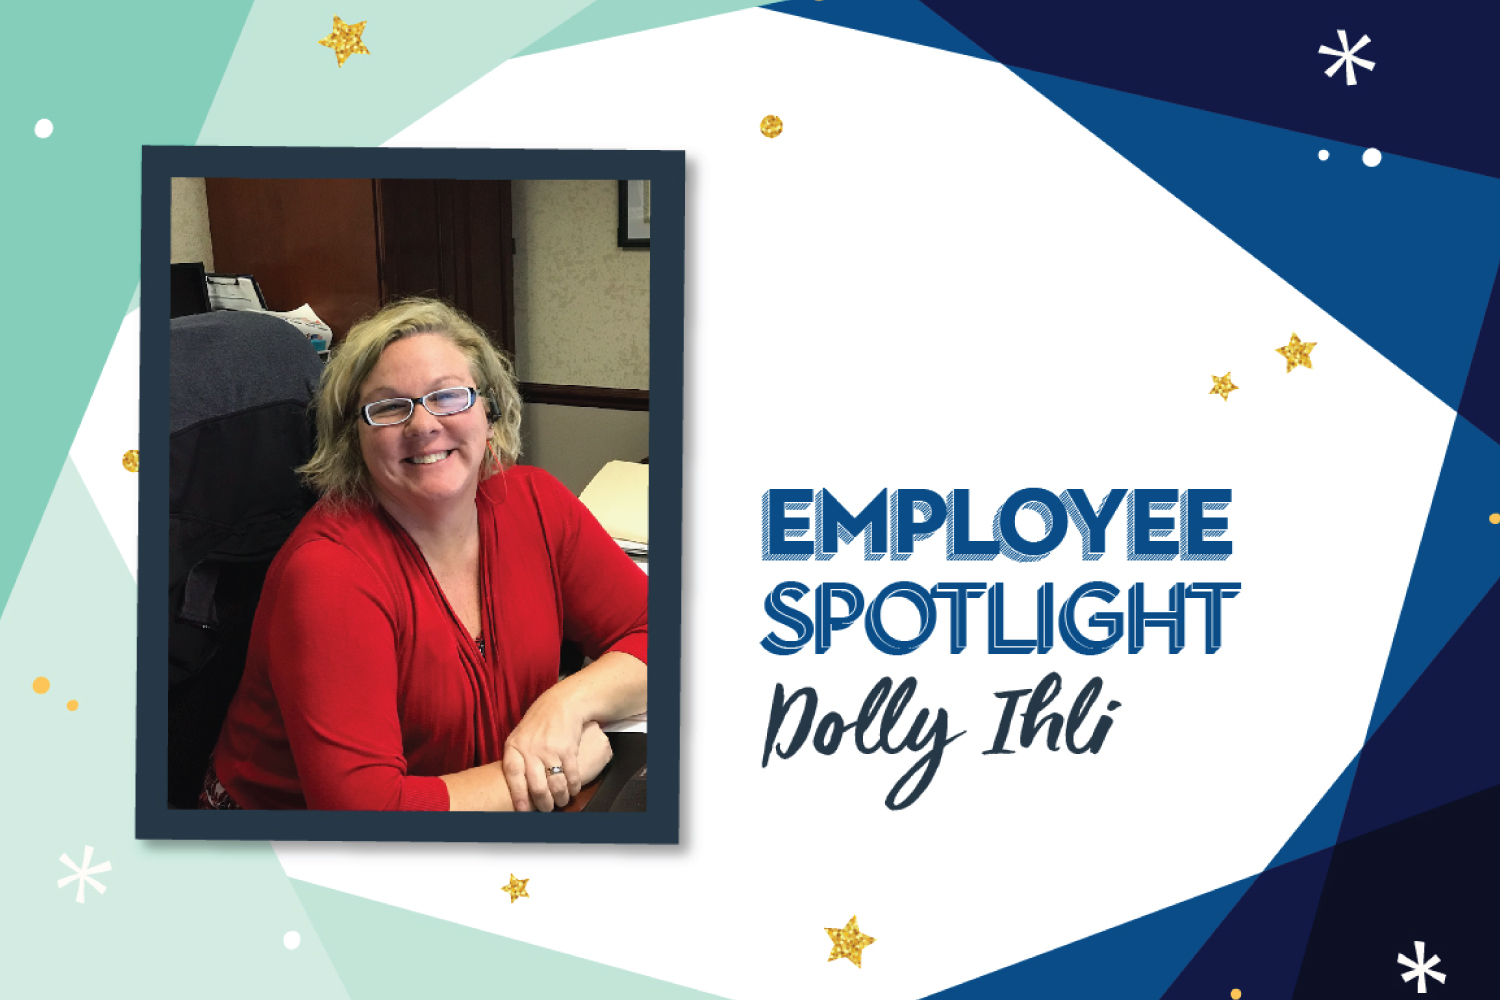 Employee Spotlight: Dolly Ihli